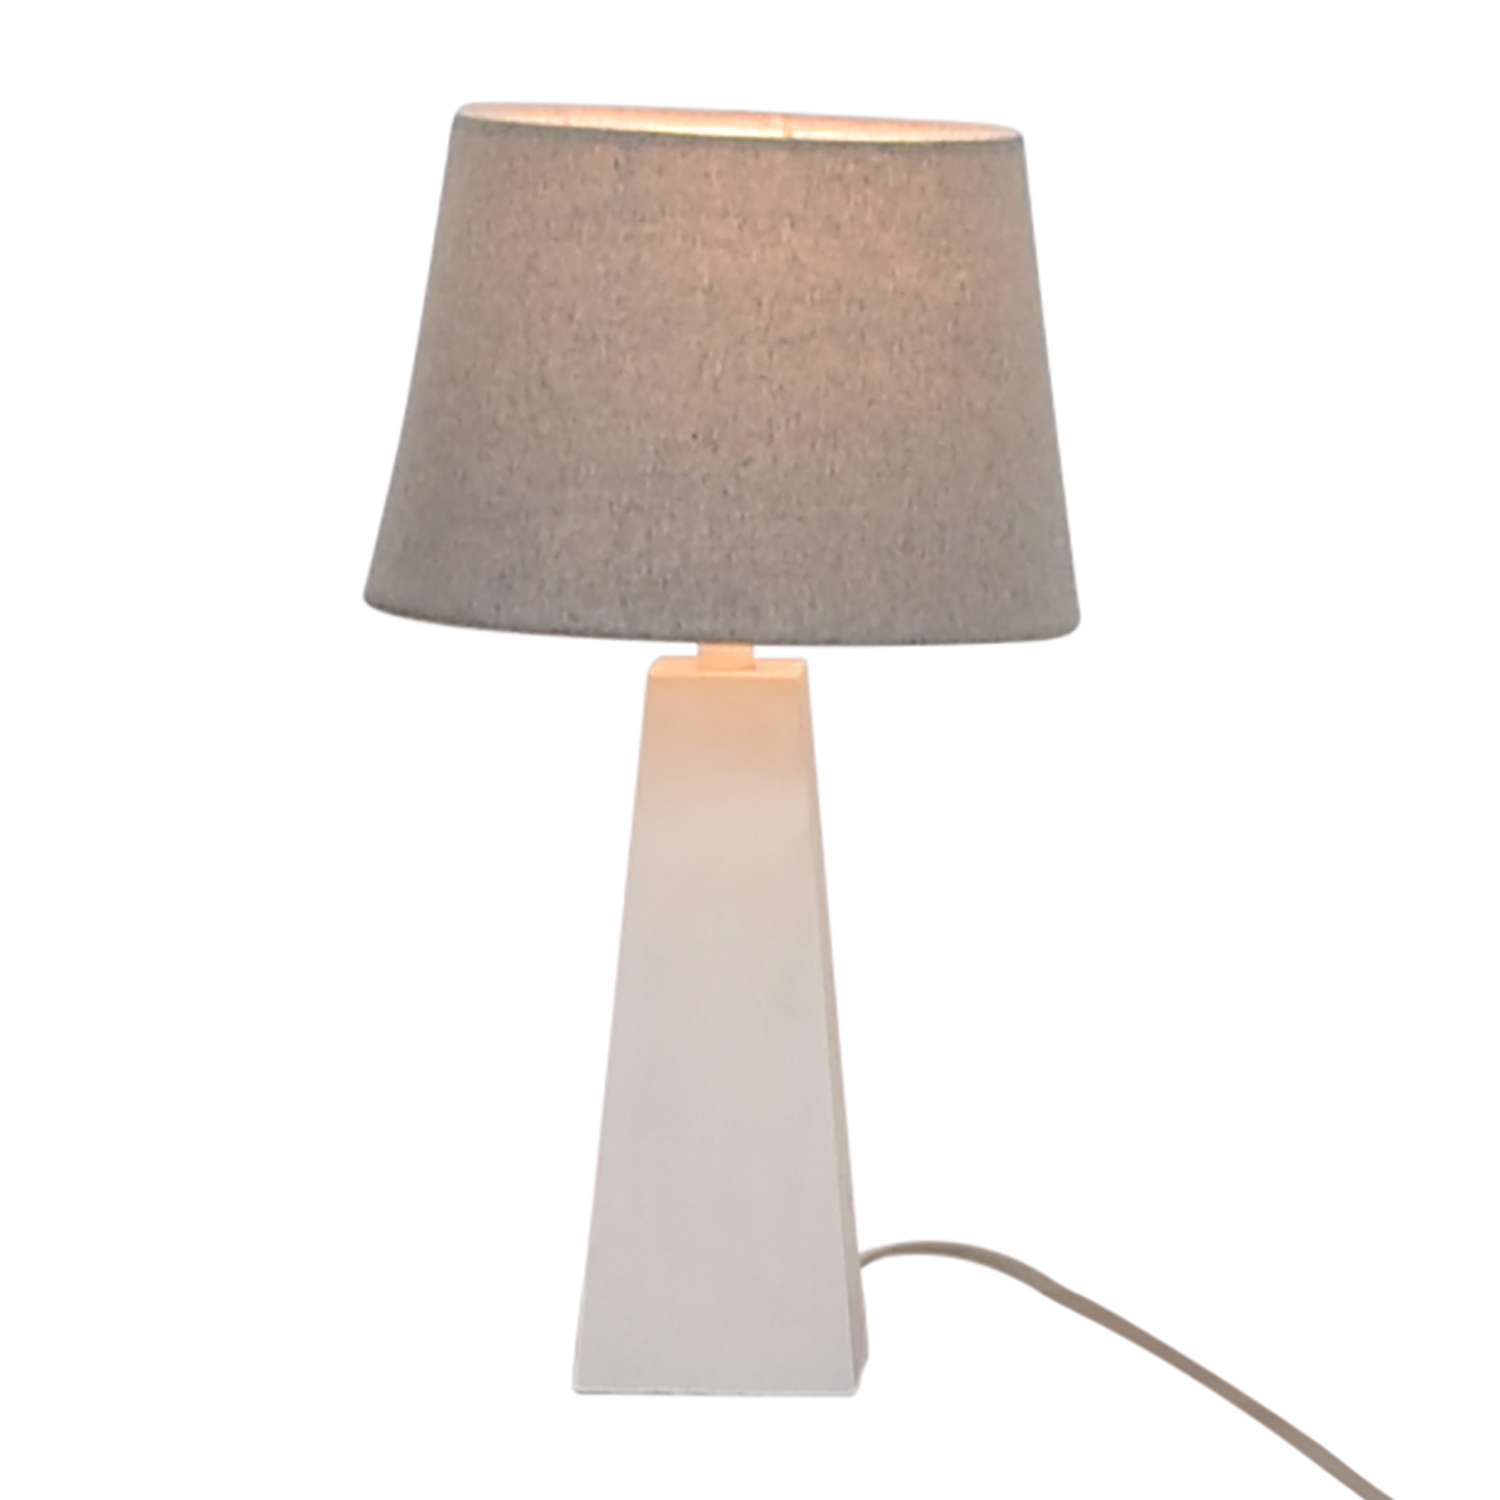 Target Target White Base with Silver Shade Lamp nj